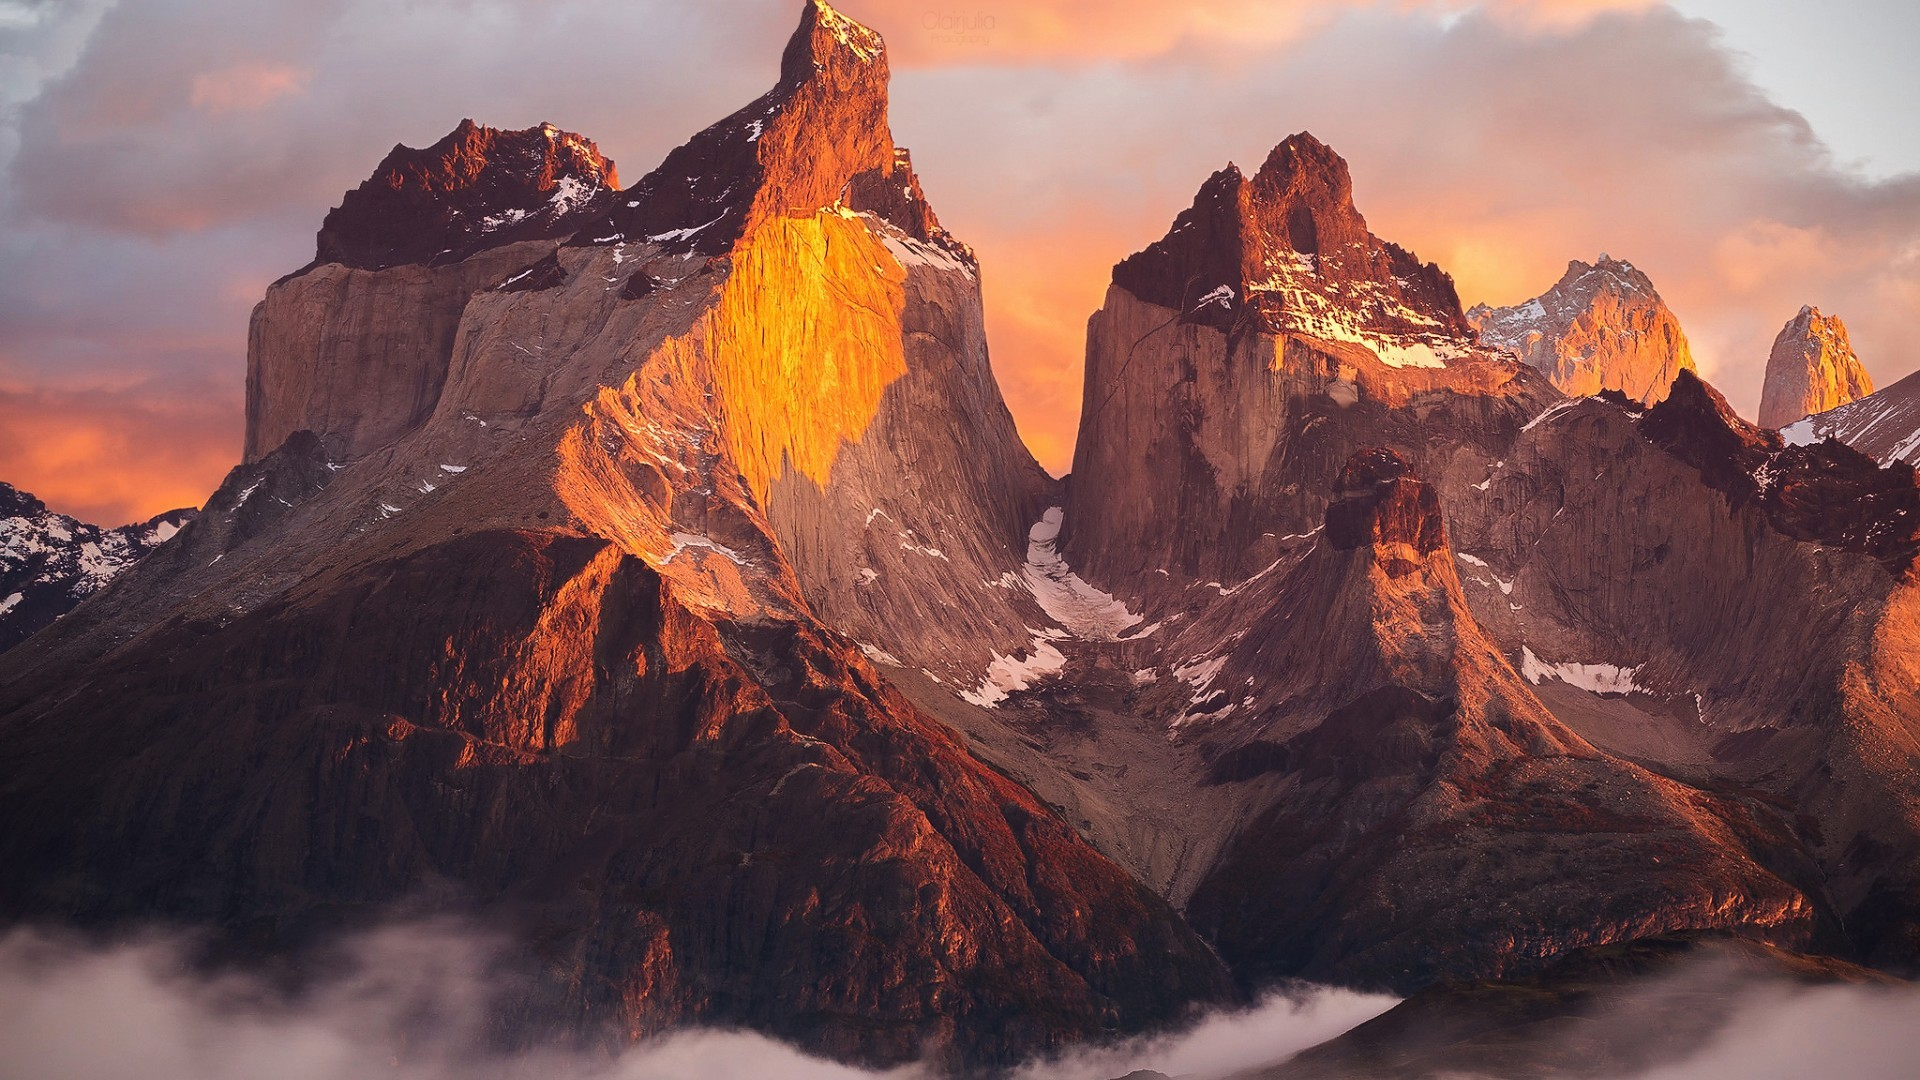 Cool Background Wallpapers 3d Andes Mountains Hd Nature 4k Wallpapers Images